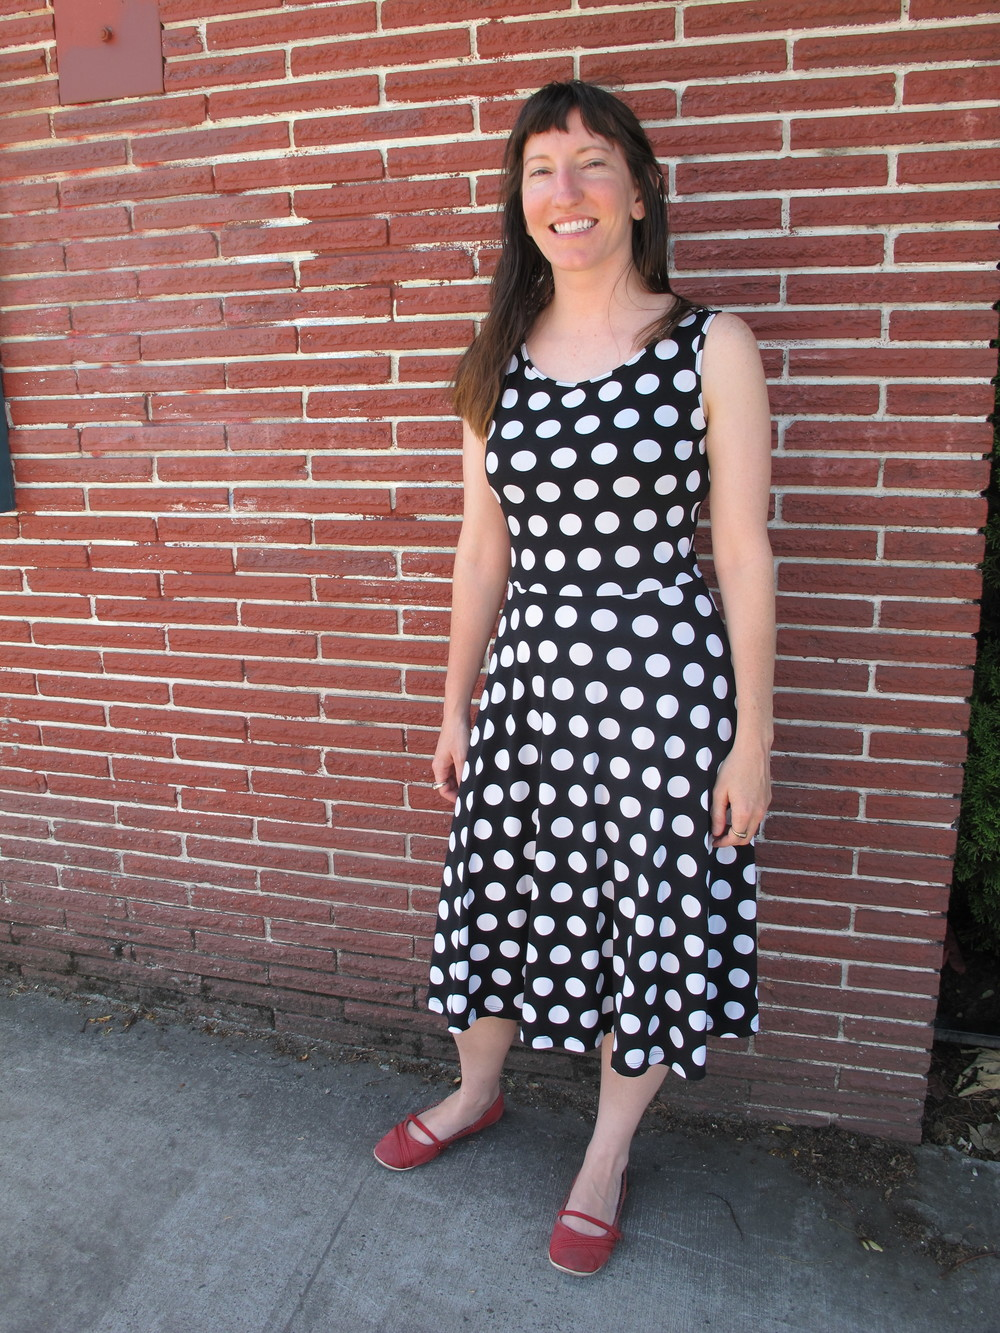 """I don't dress up much. This is actually one of the cutest things I own; I'm quite utilitarian."" -Melanie, local"